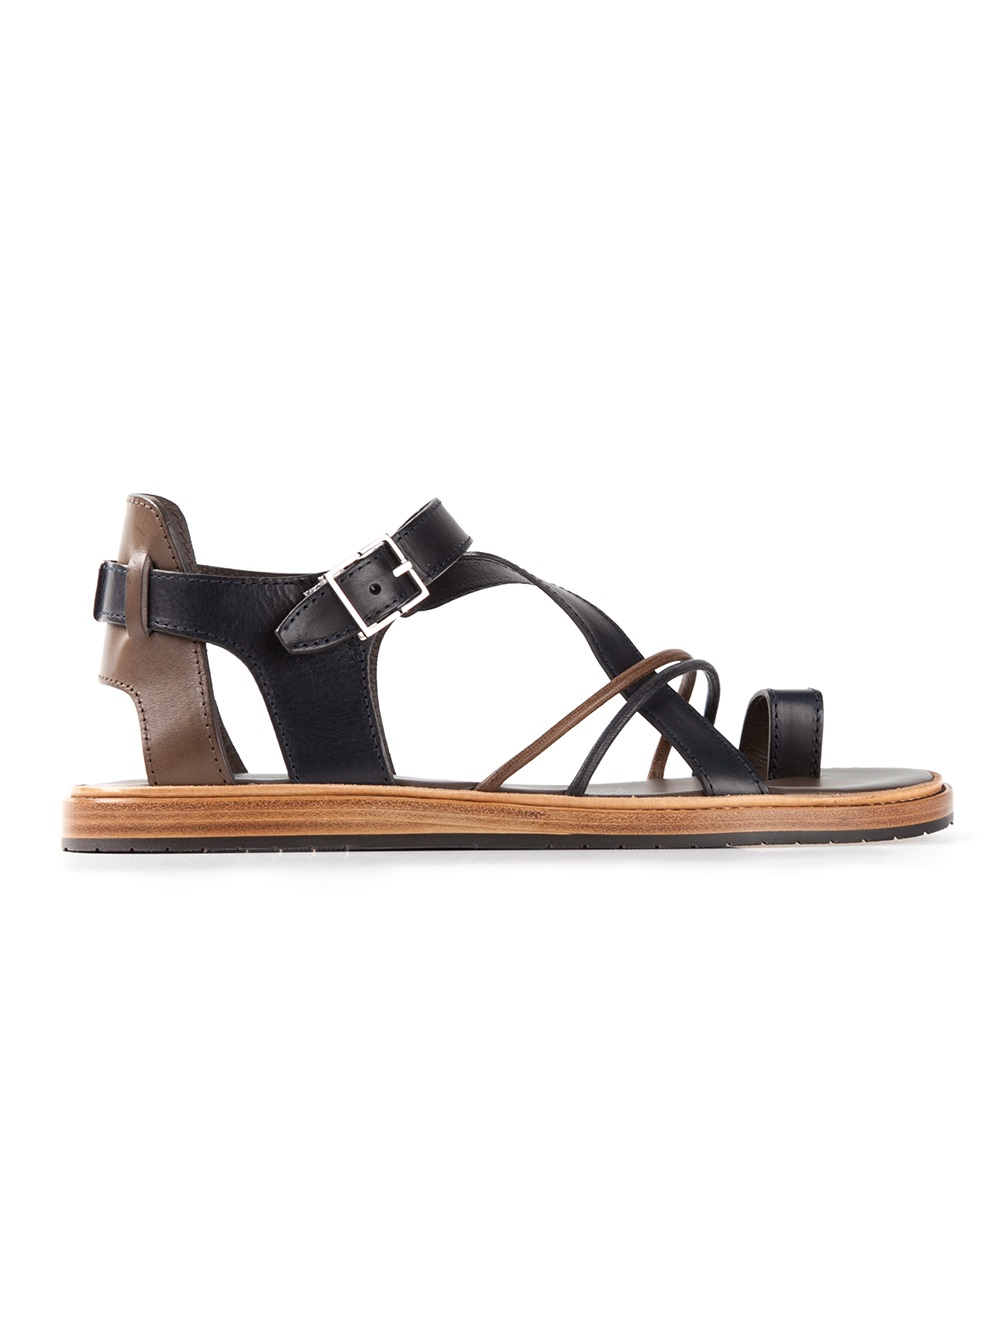 13c756ac28e37a Lyst - Dior Homme Strap Sandals in Black for Men